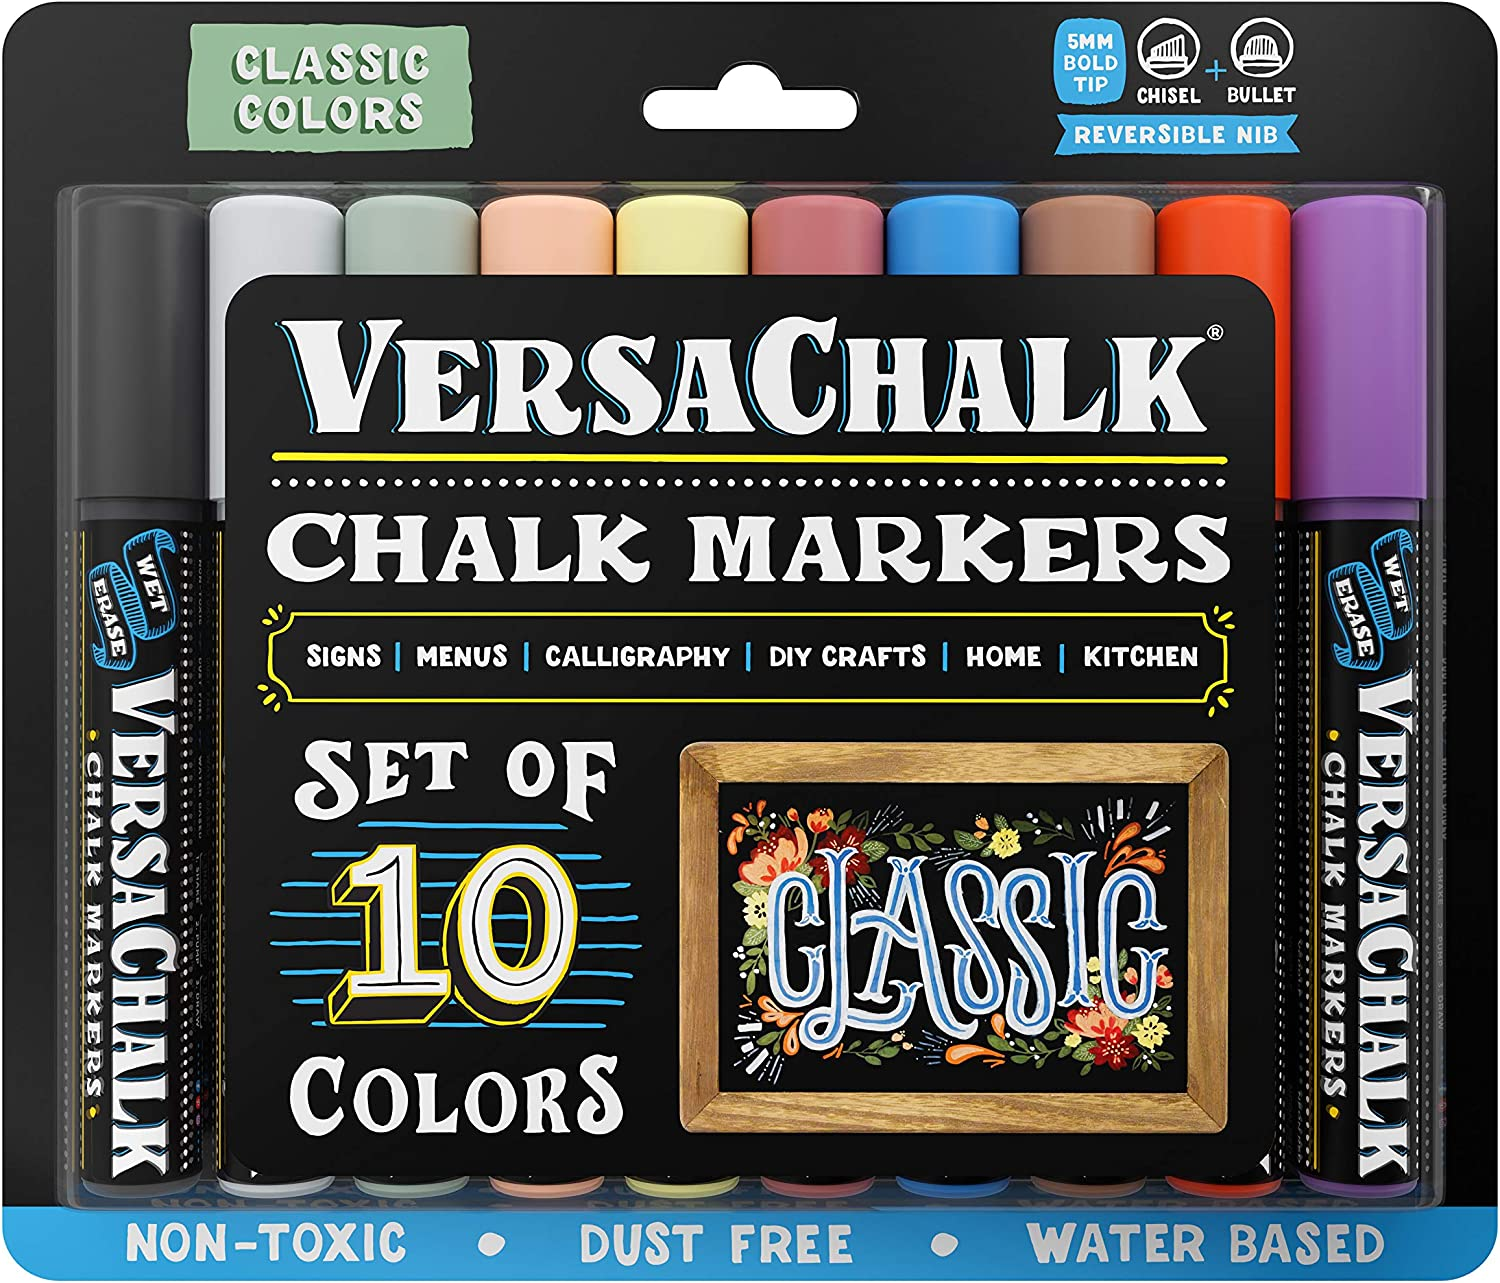 VersaChalk Classic Liquid Chalk Markers for Blackboards (10 Pack, 5mm, Bold Tip) - Erasable Washable Chalk Pens for Chalkboard Signs, Windows, Glass, Events, Schools, Office Supplies, and Business